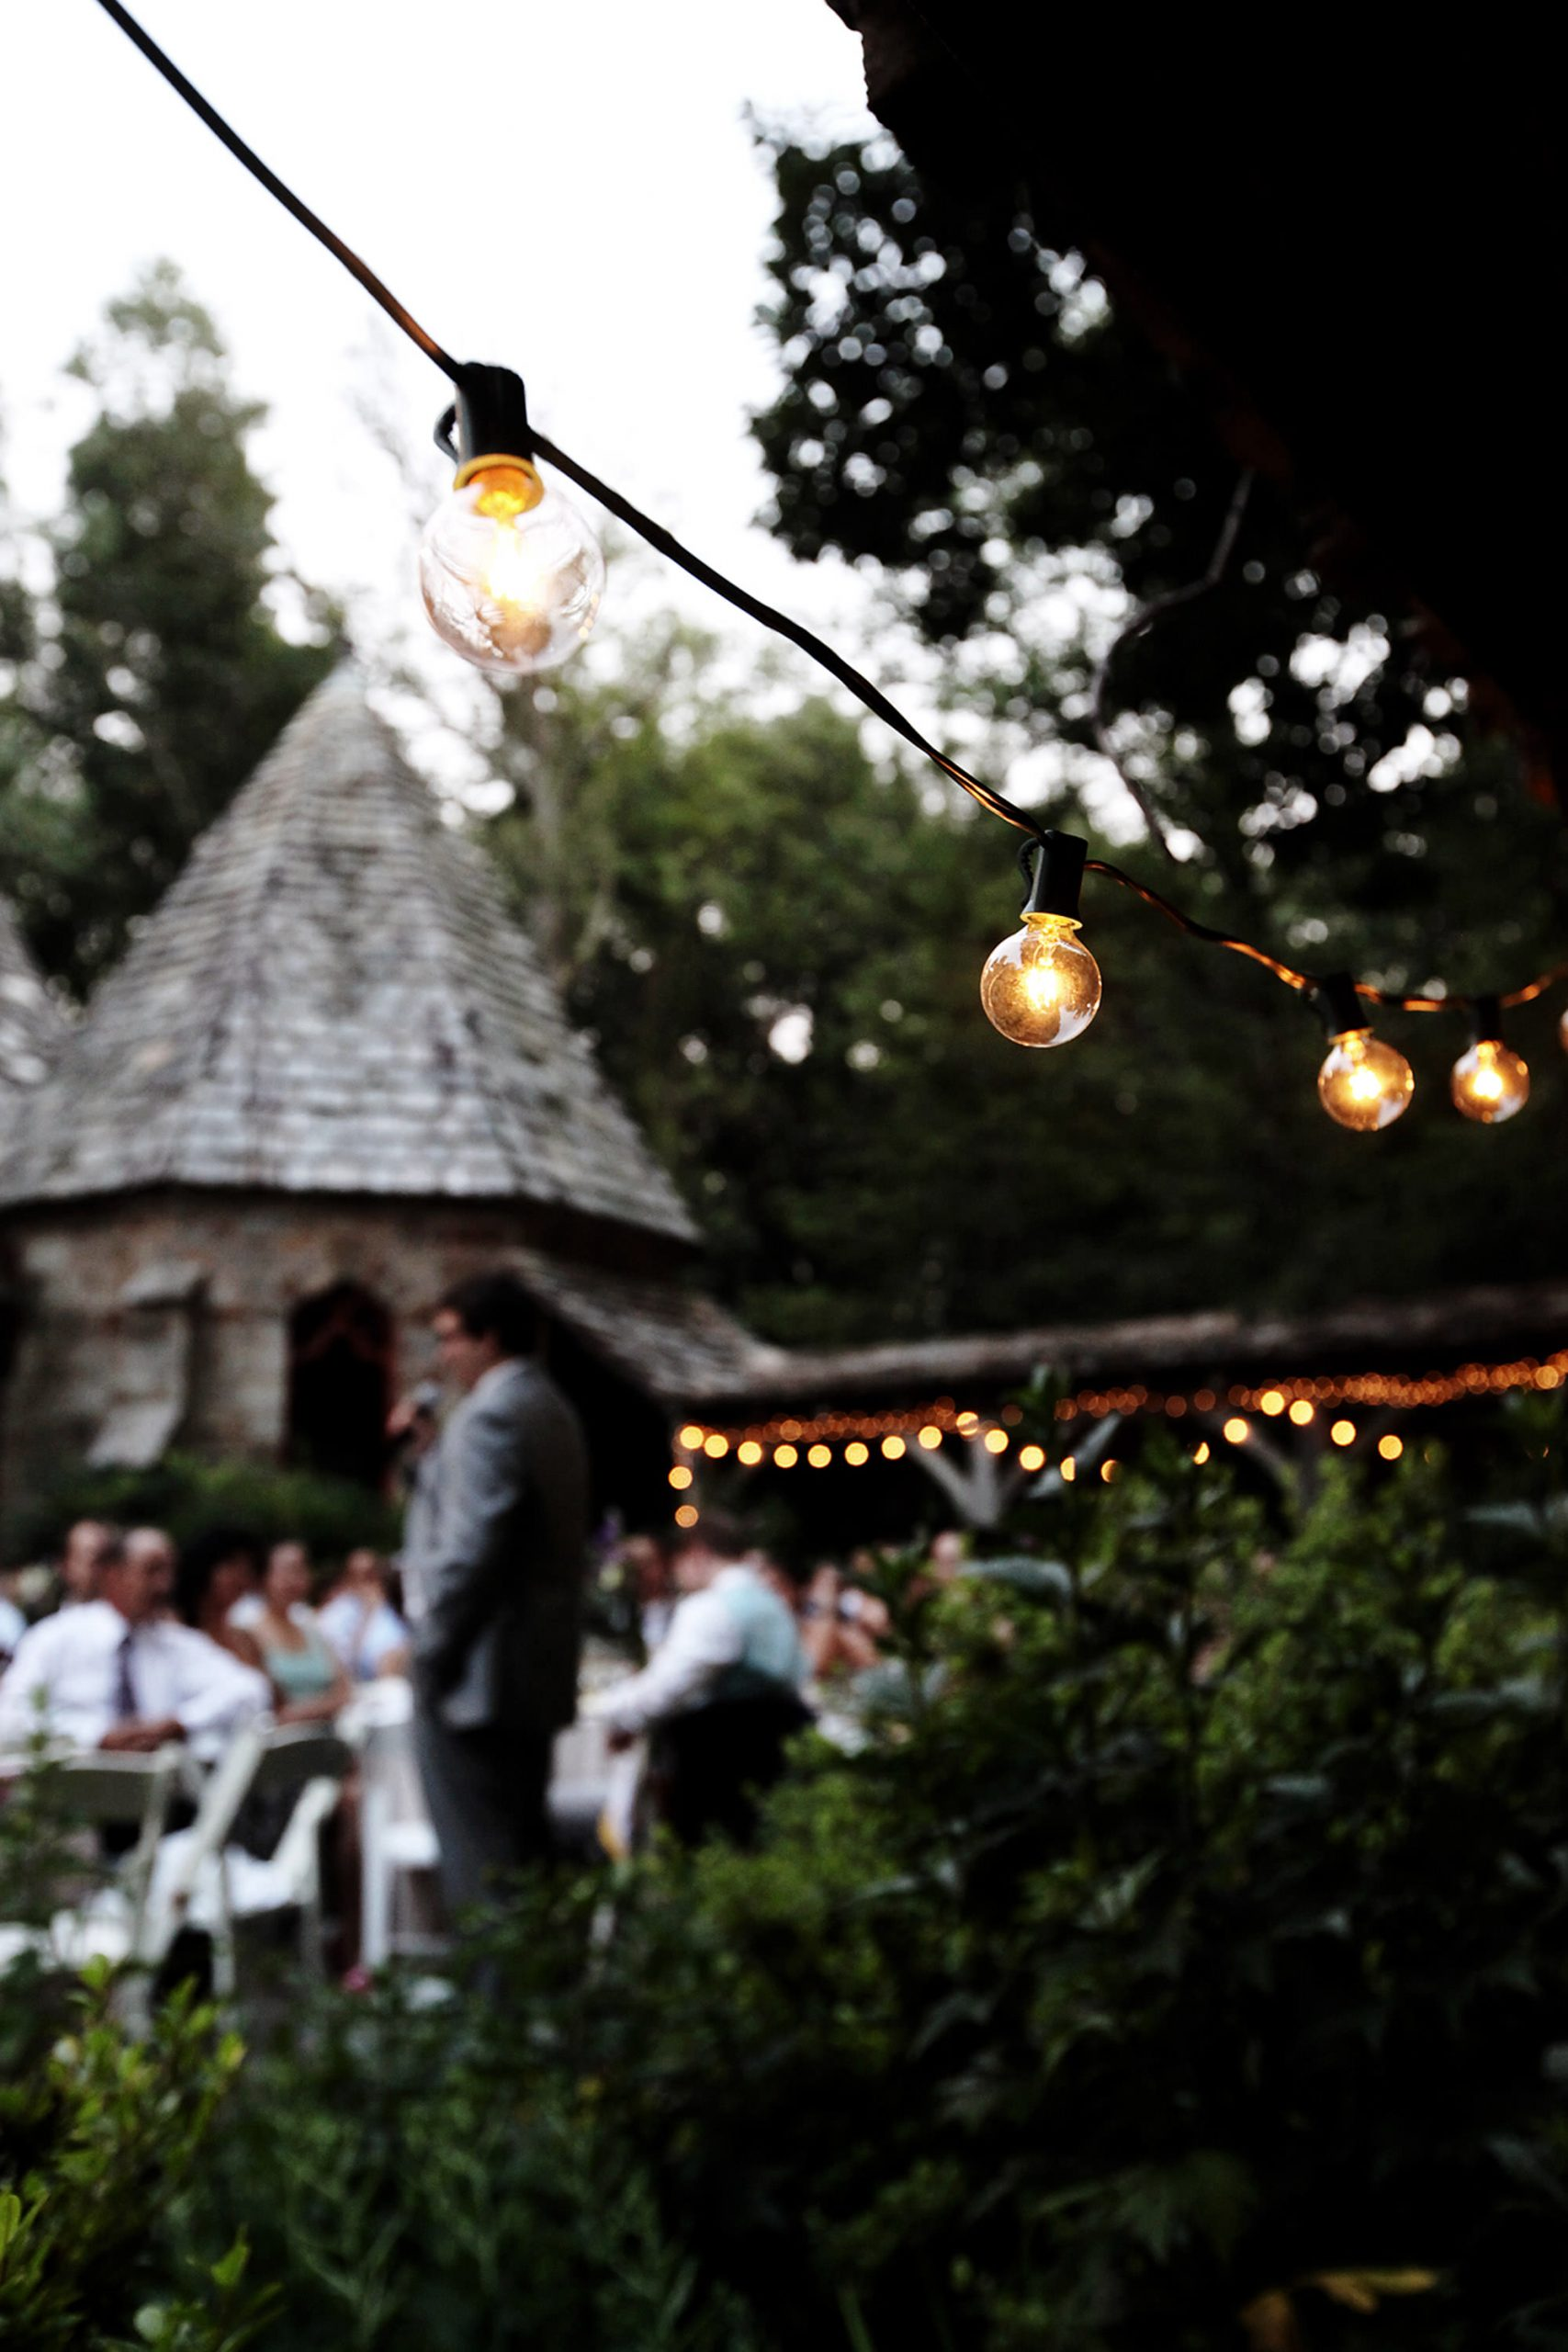 Cloisters Castle Wedding  I  Twinkle lights hang as guests give toasts during the outdoor wedding reception in Lutherville, MD.